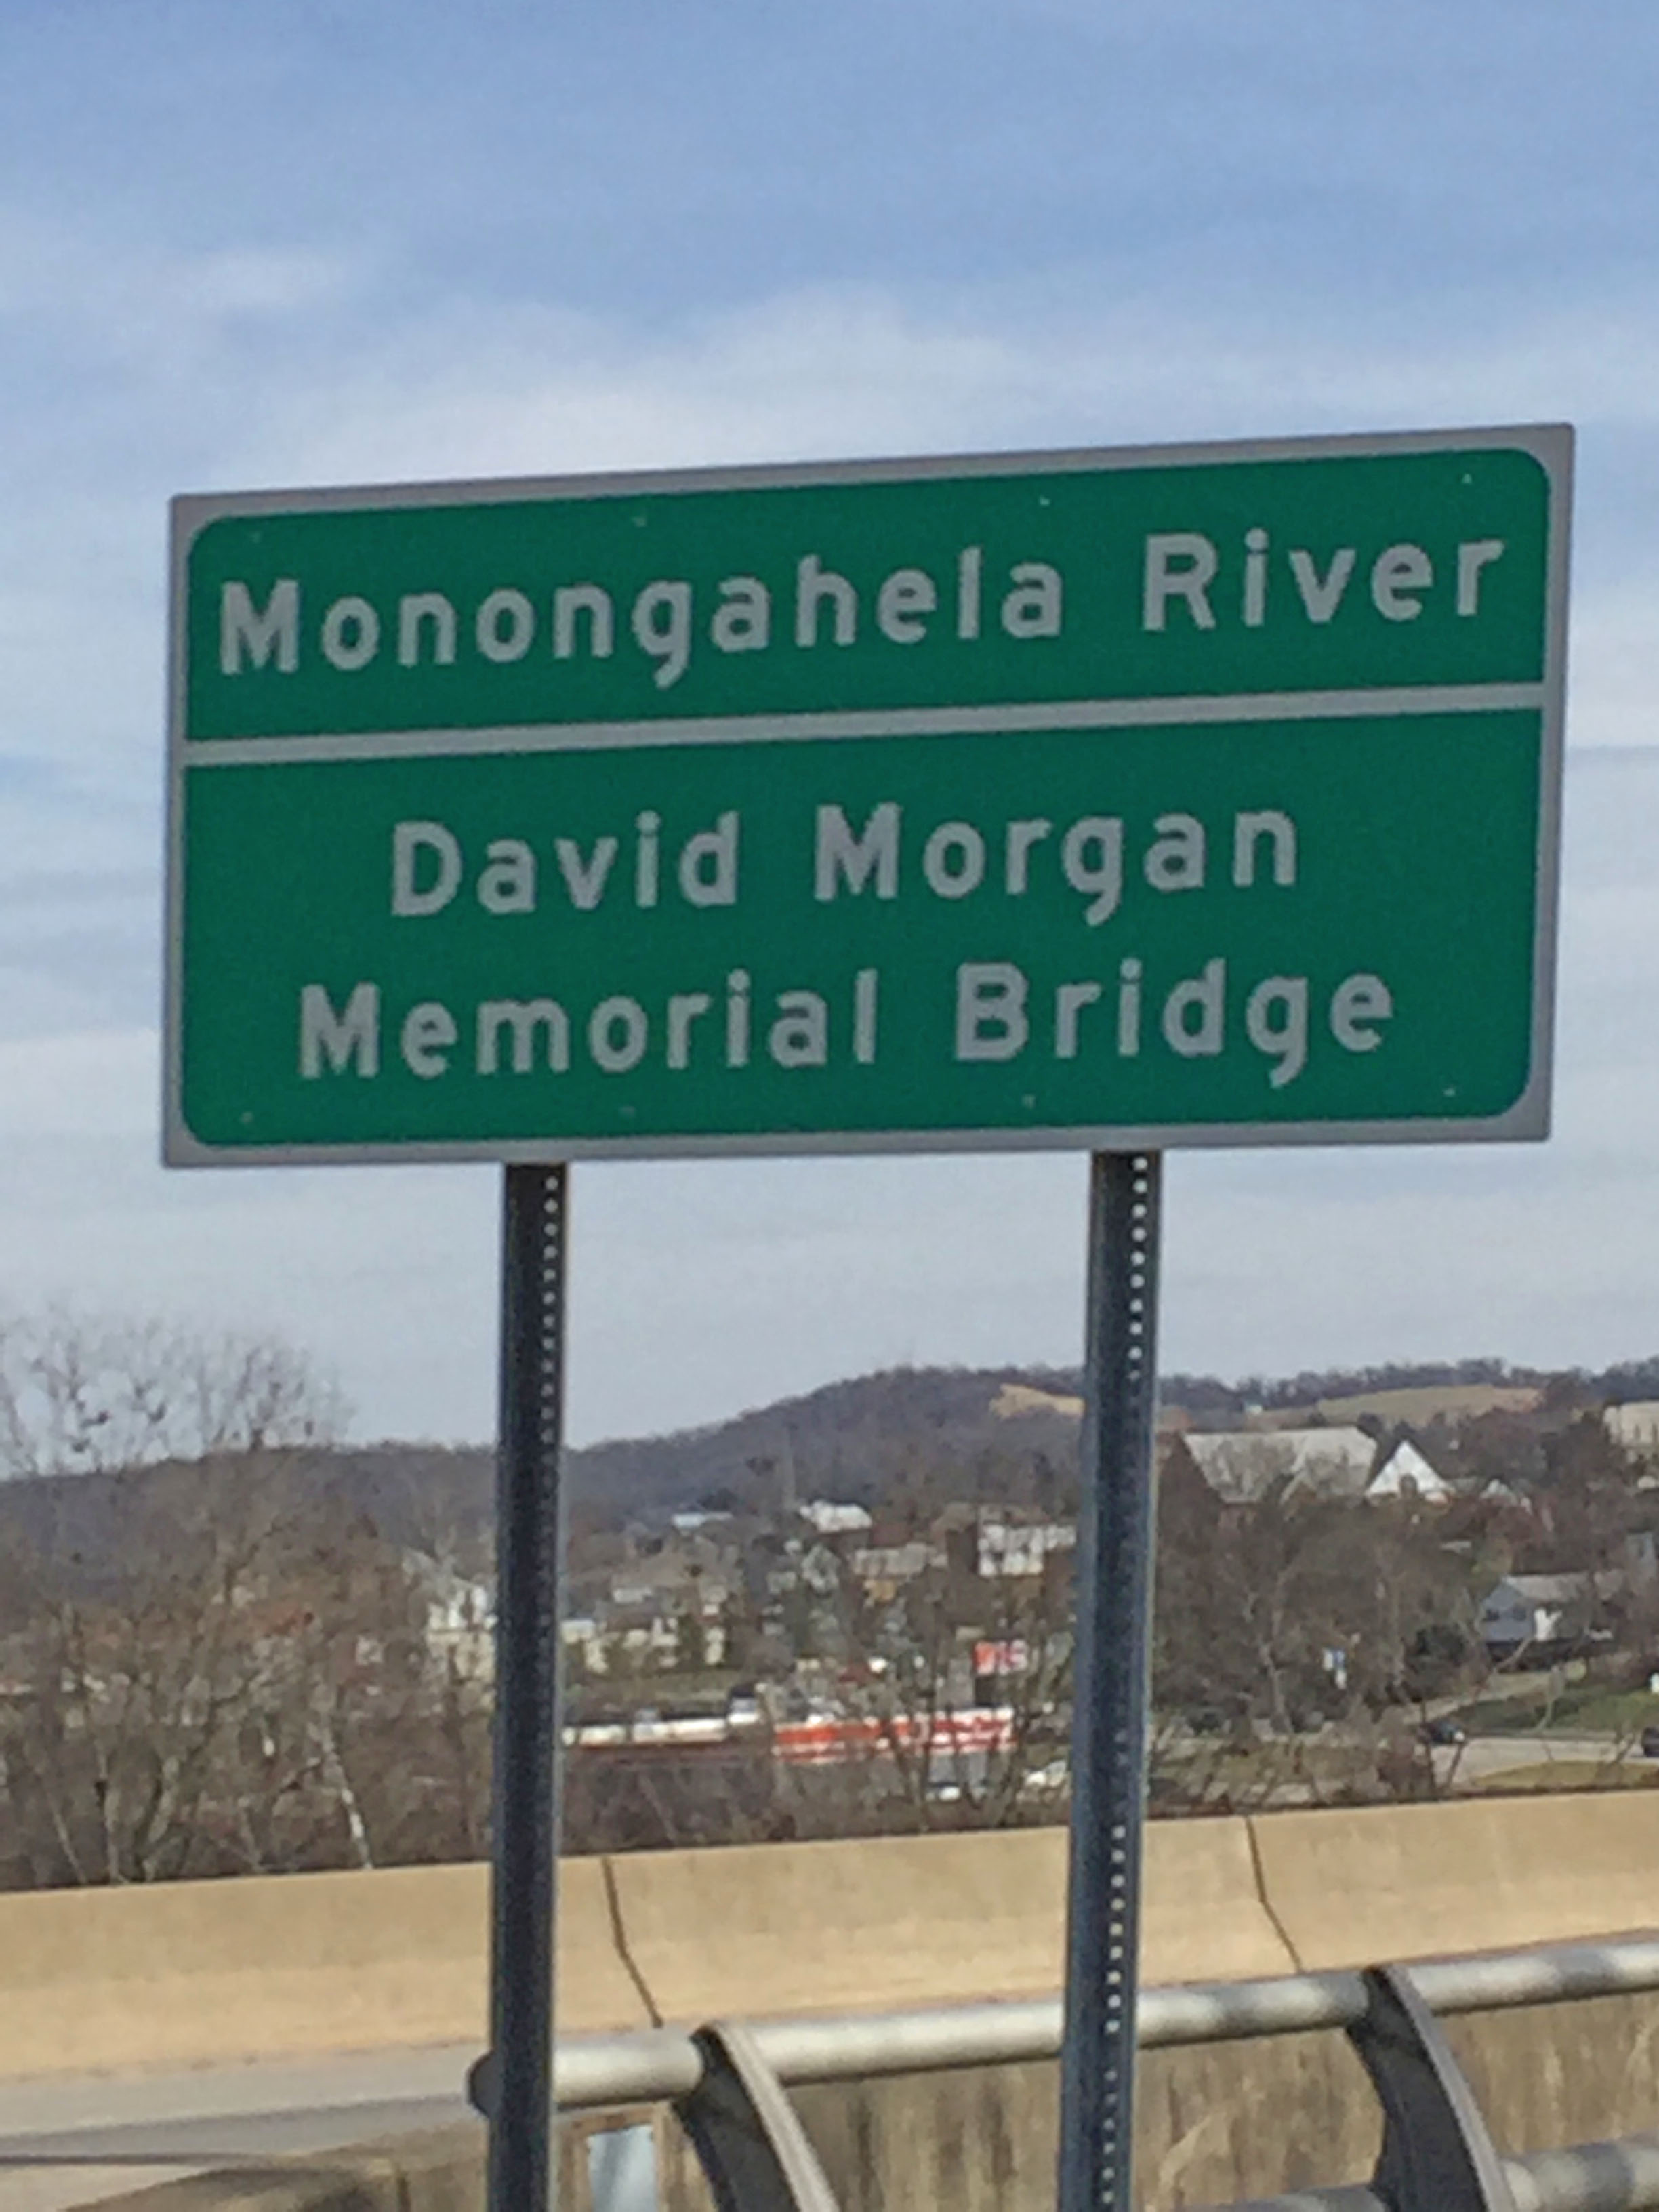 David Morgan Memorial Bridge sign. Photo by Juanita DeBerry Feb. 18, 2017